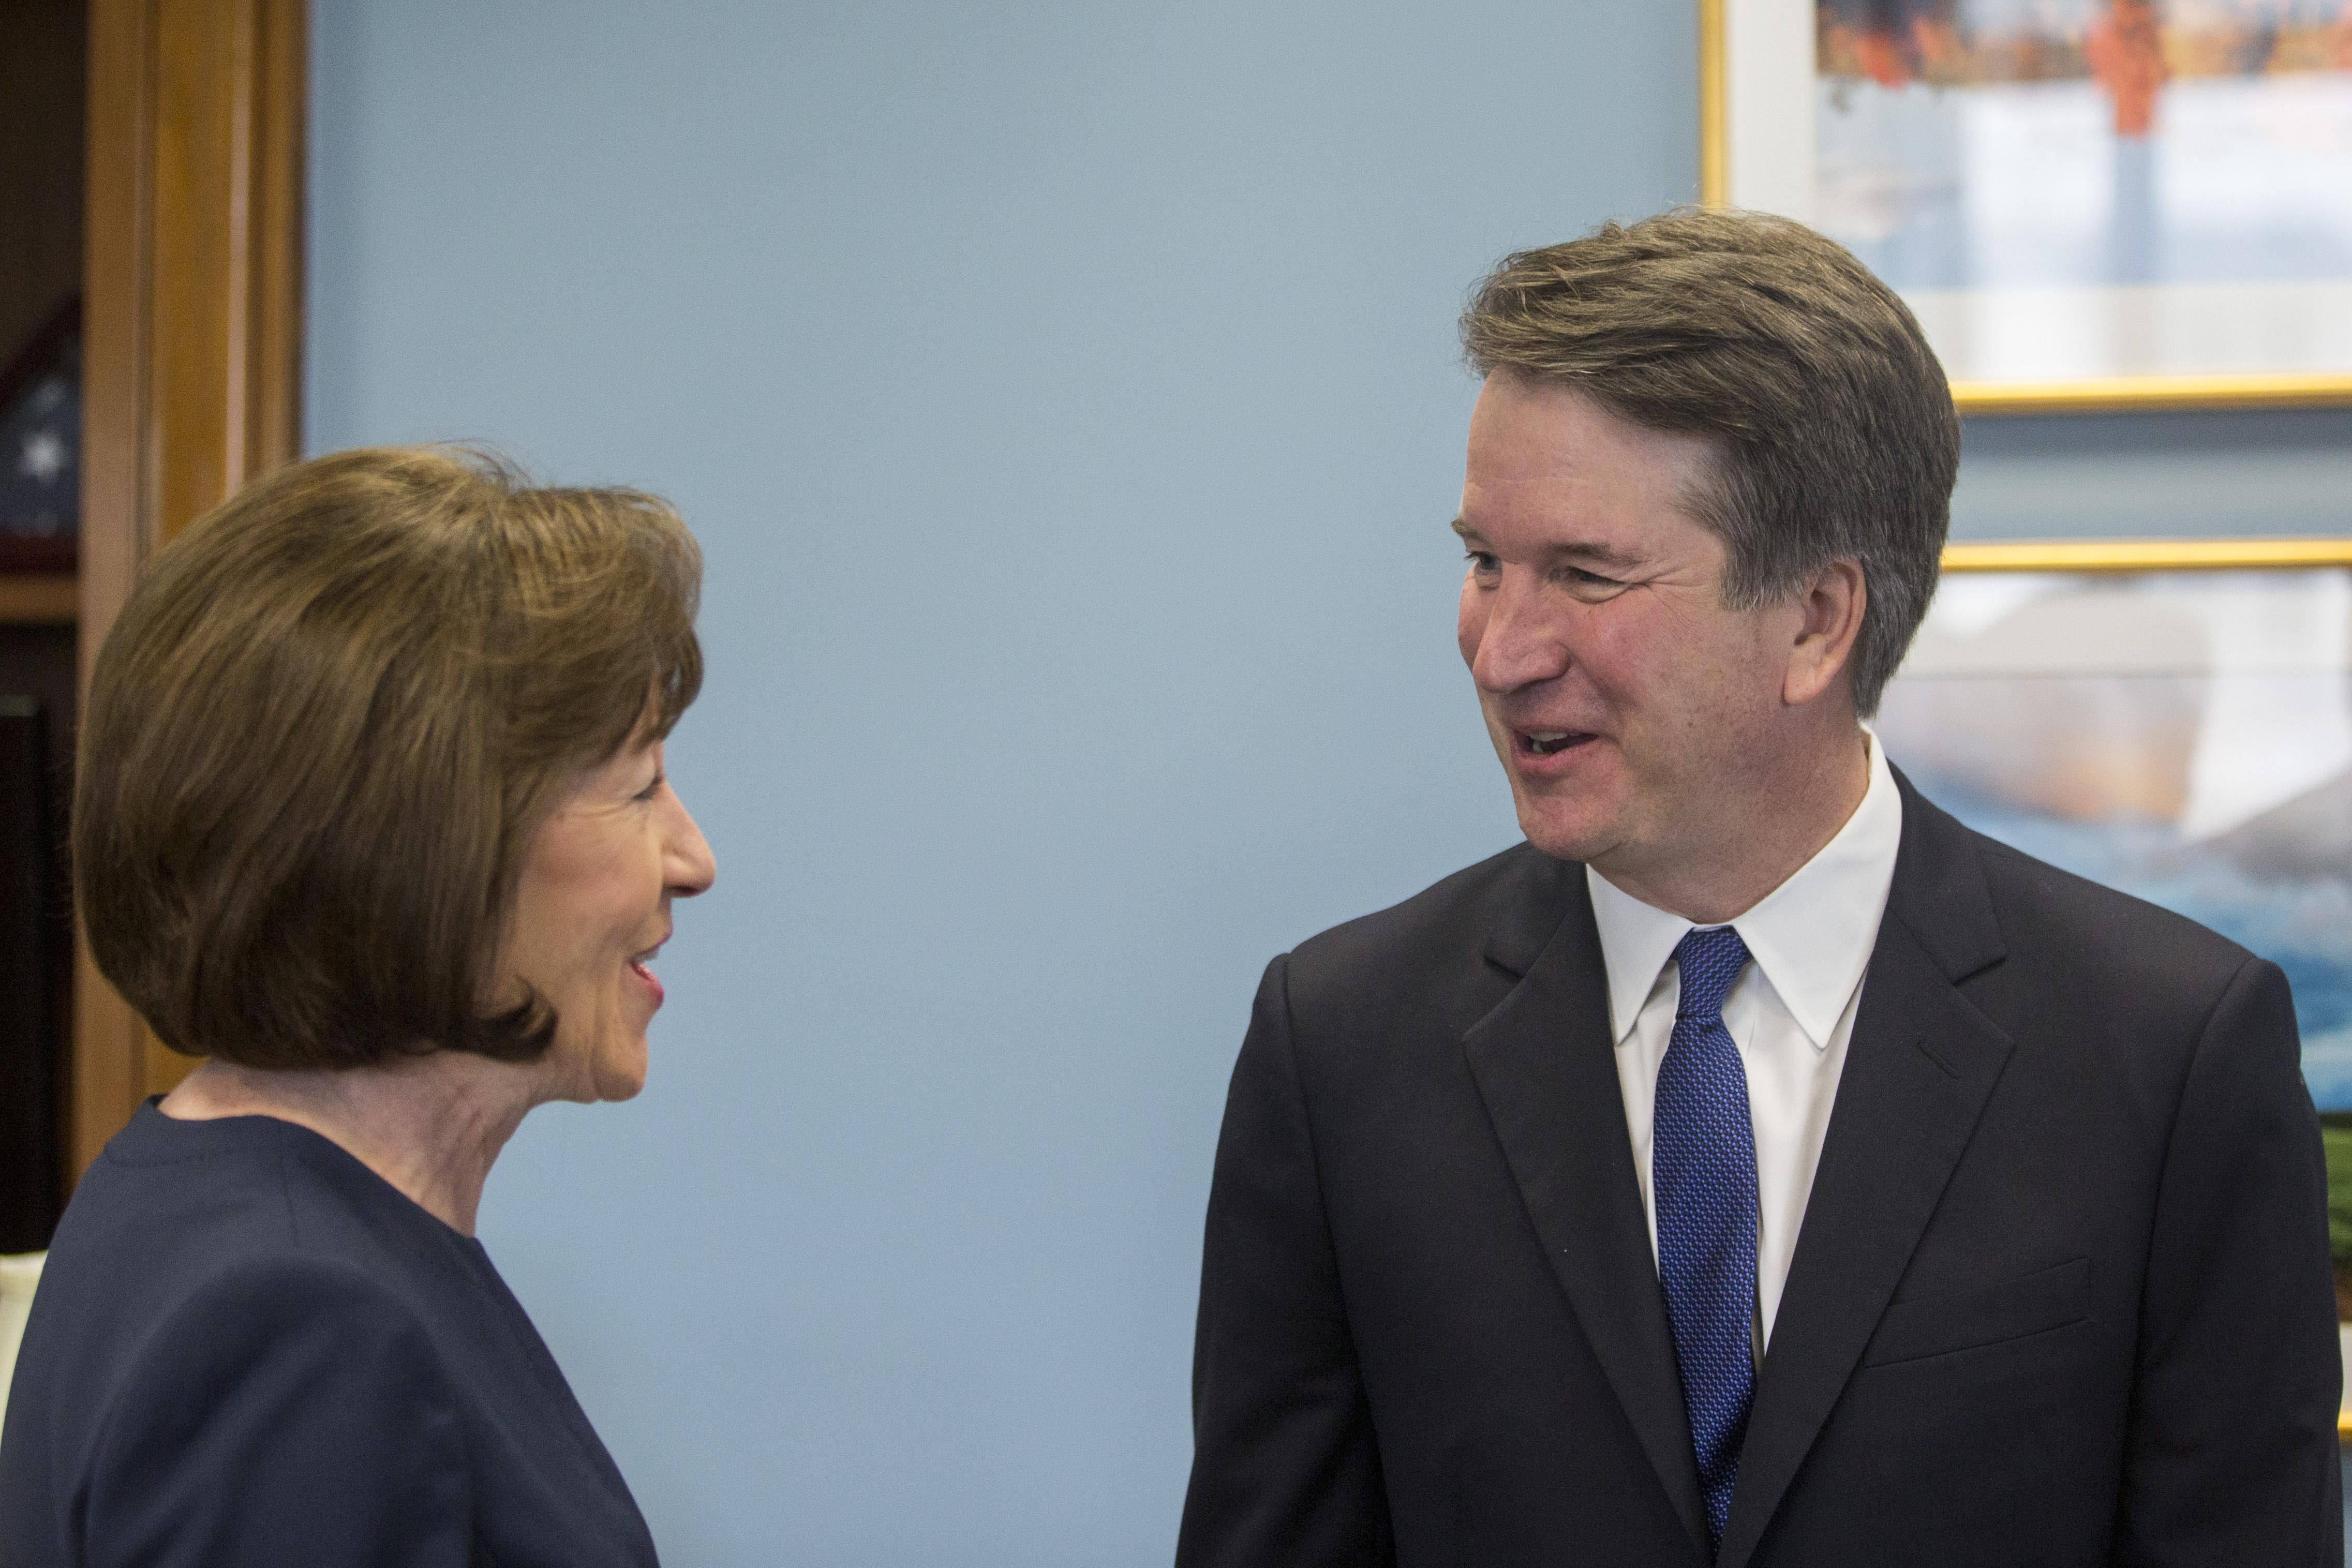 Sen. Susan Collins meets with Supreme Court nominee Brett Kavanaugh on Tuesday.